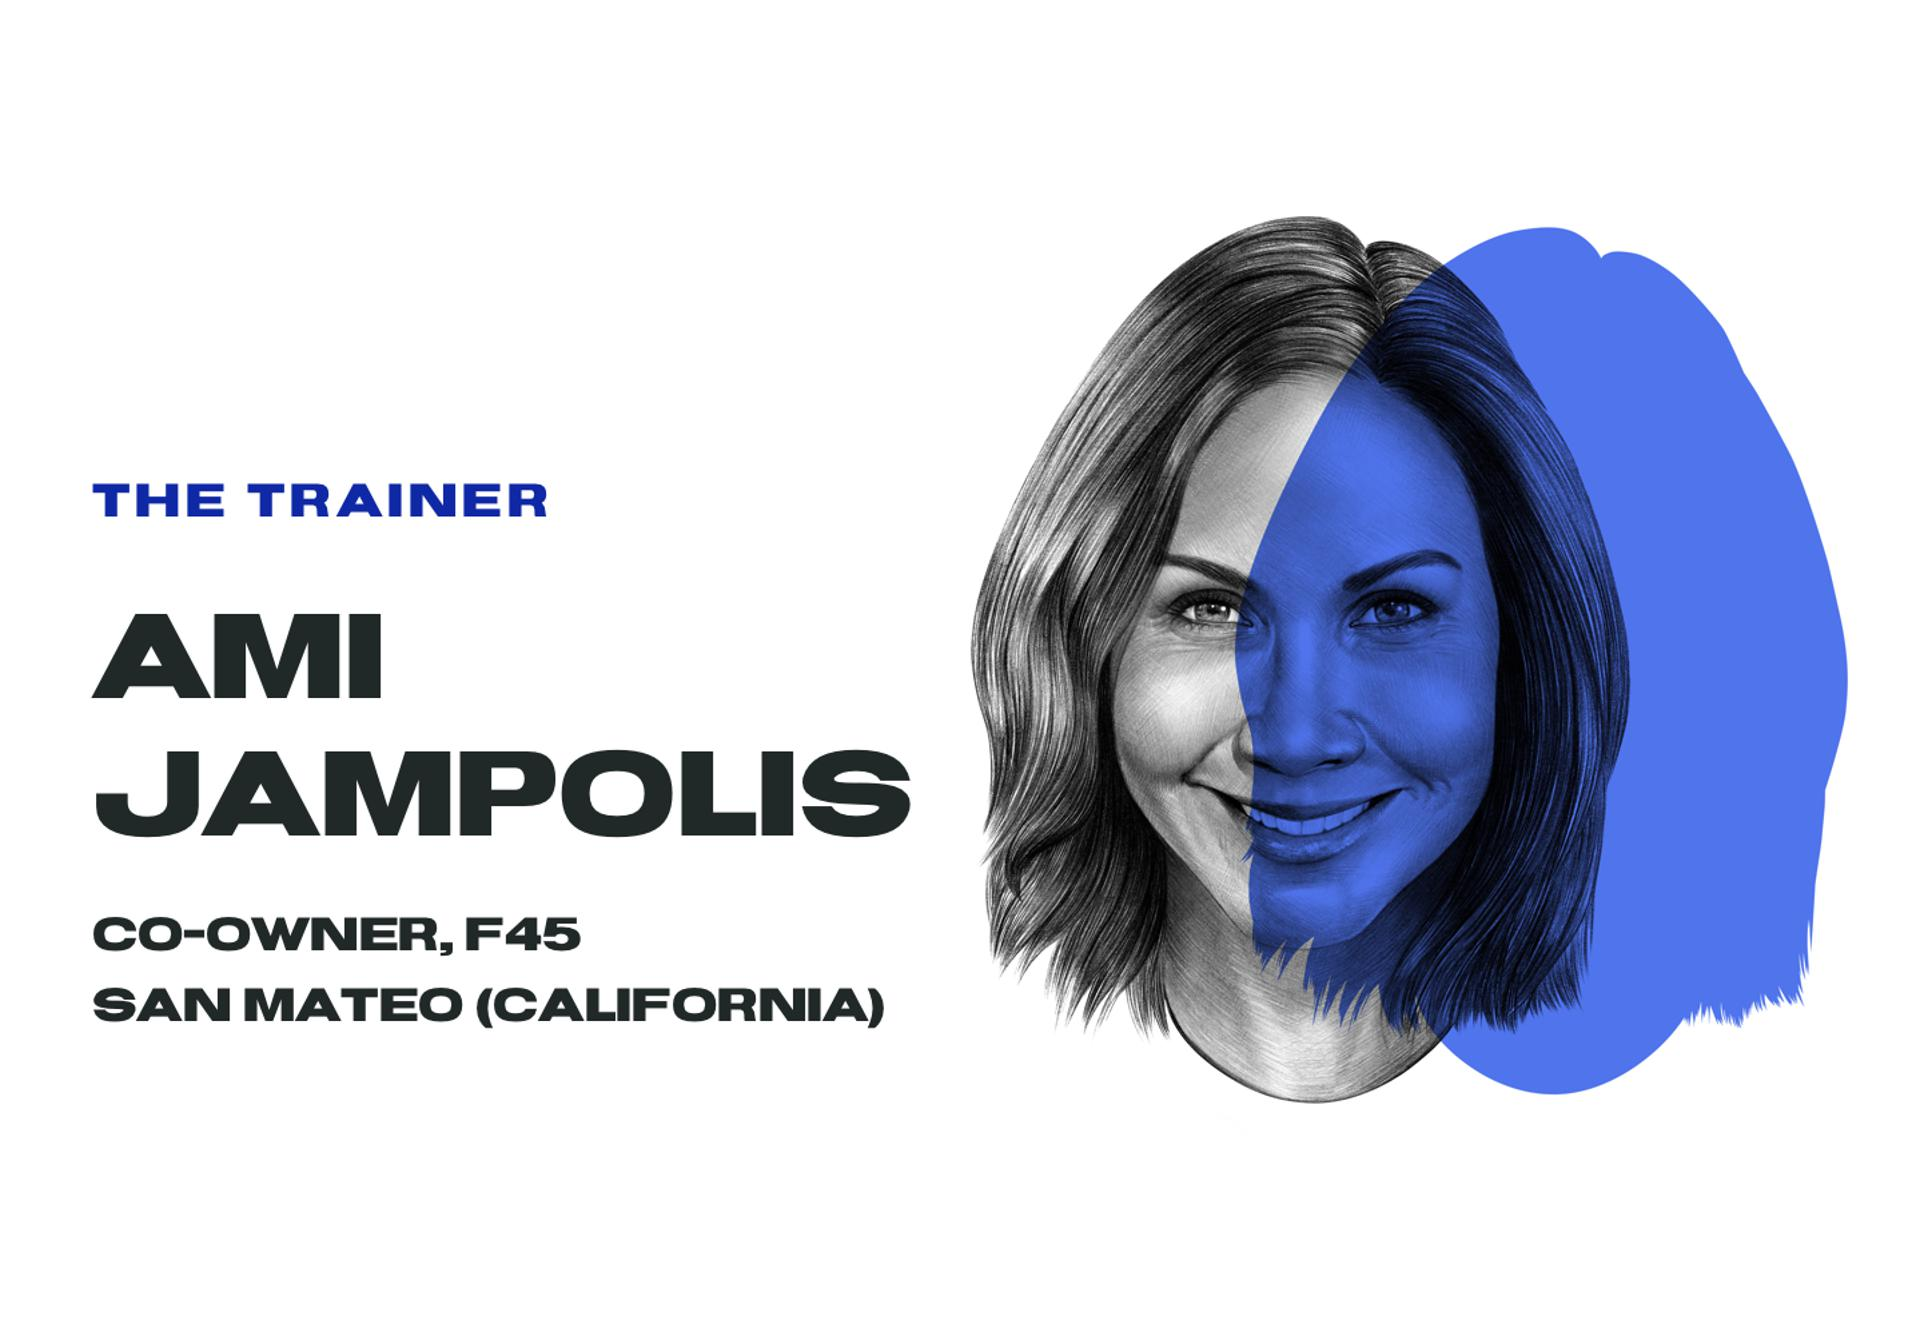 The Trainer, Ami Jampolis, co-owner, F45 San Mateo (California)